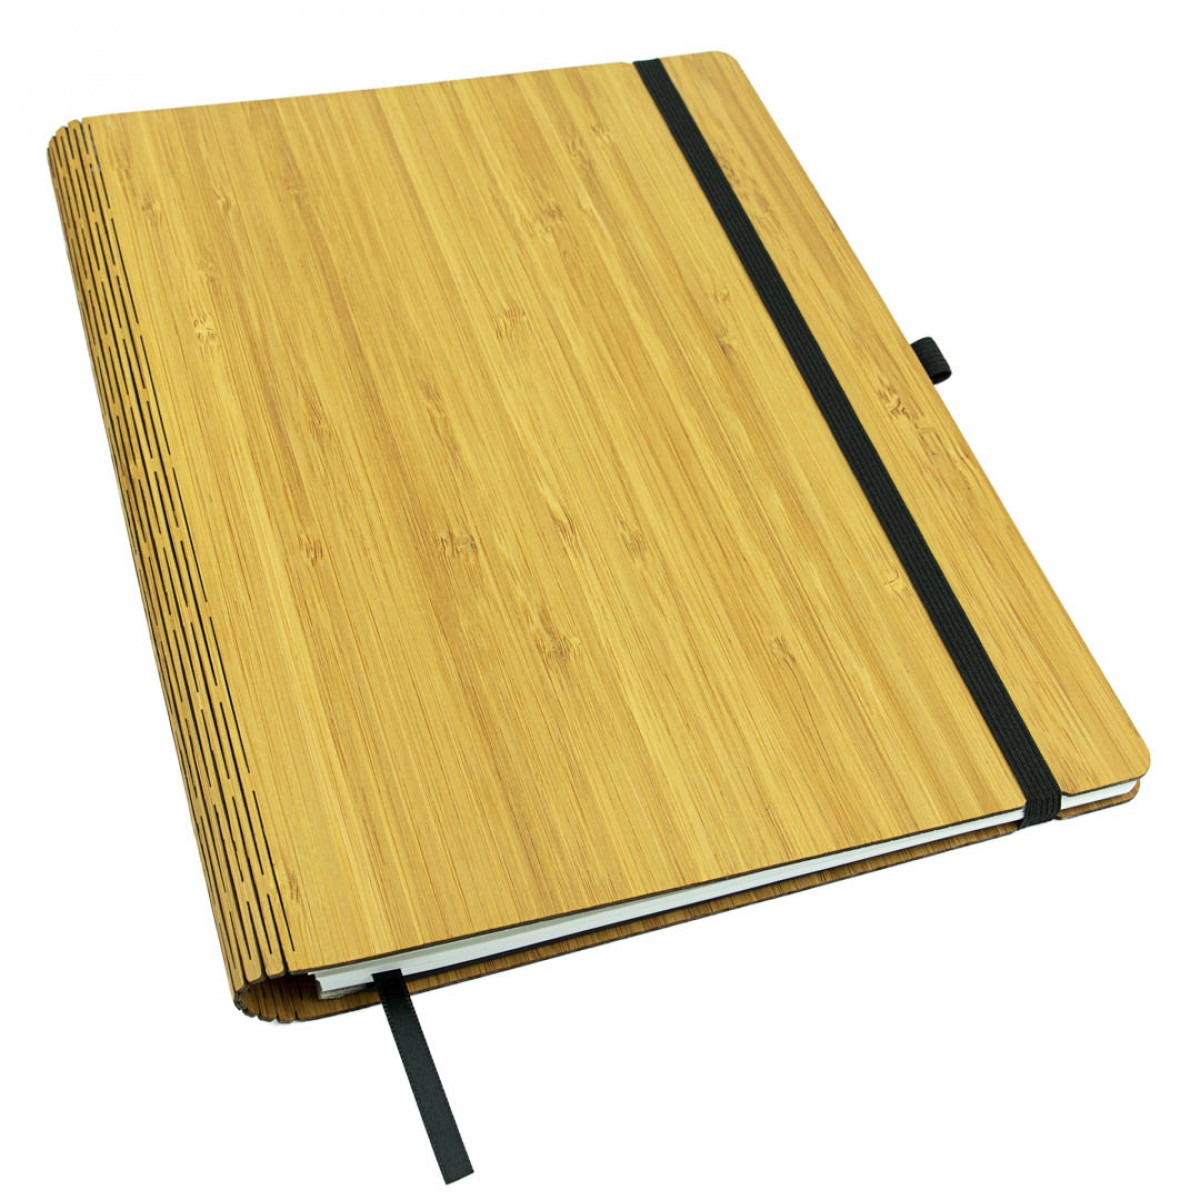 JUNGHOLZ Design Notizbuch WoodBook, Bambus A4